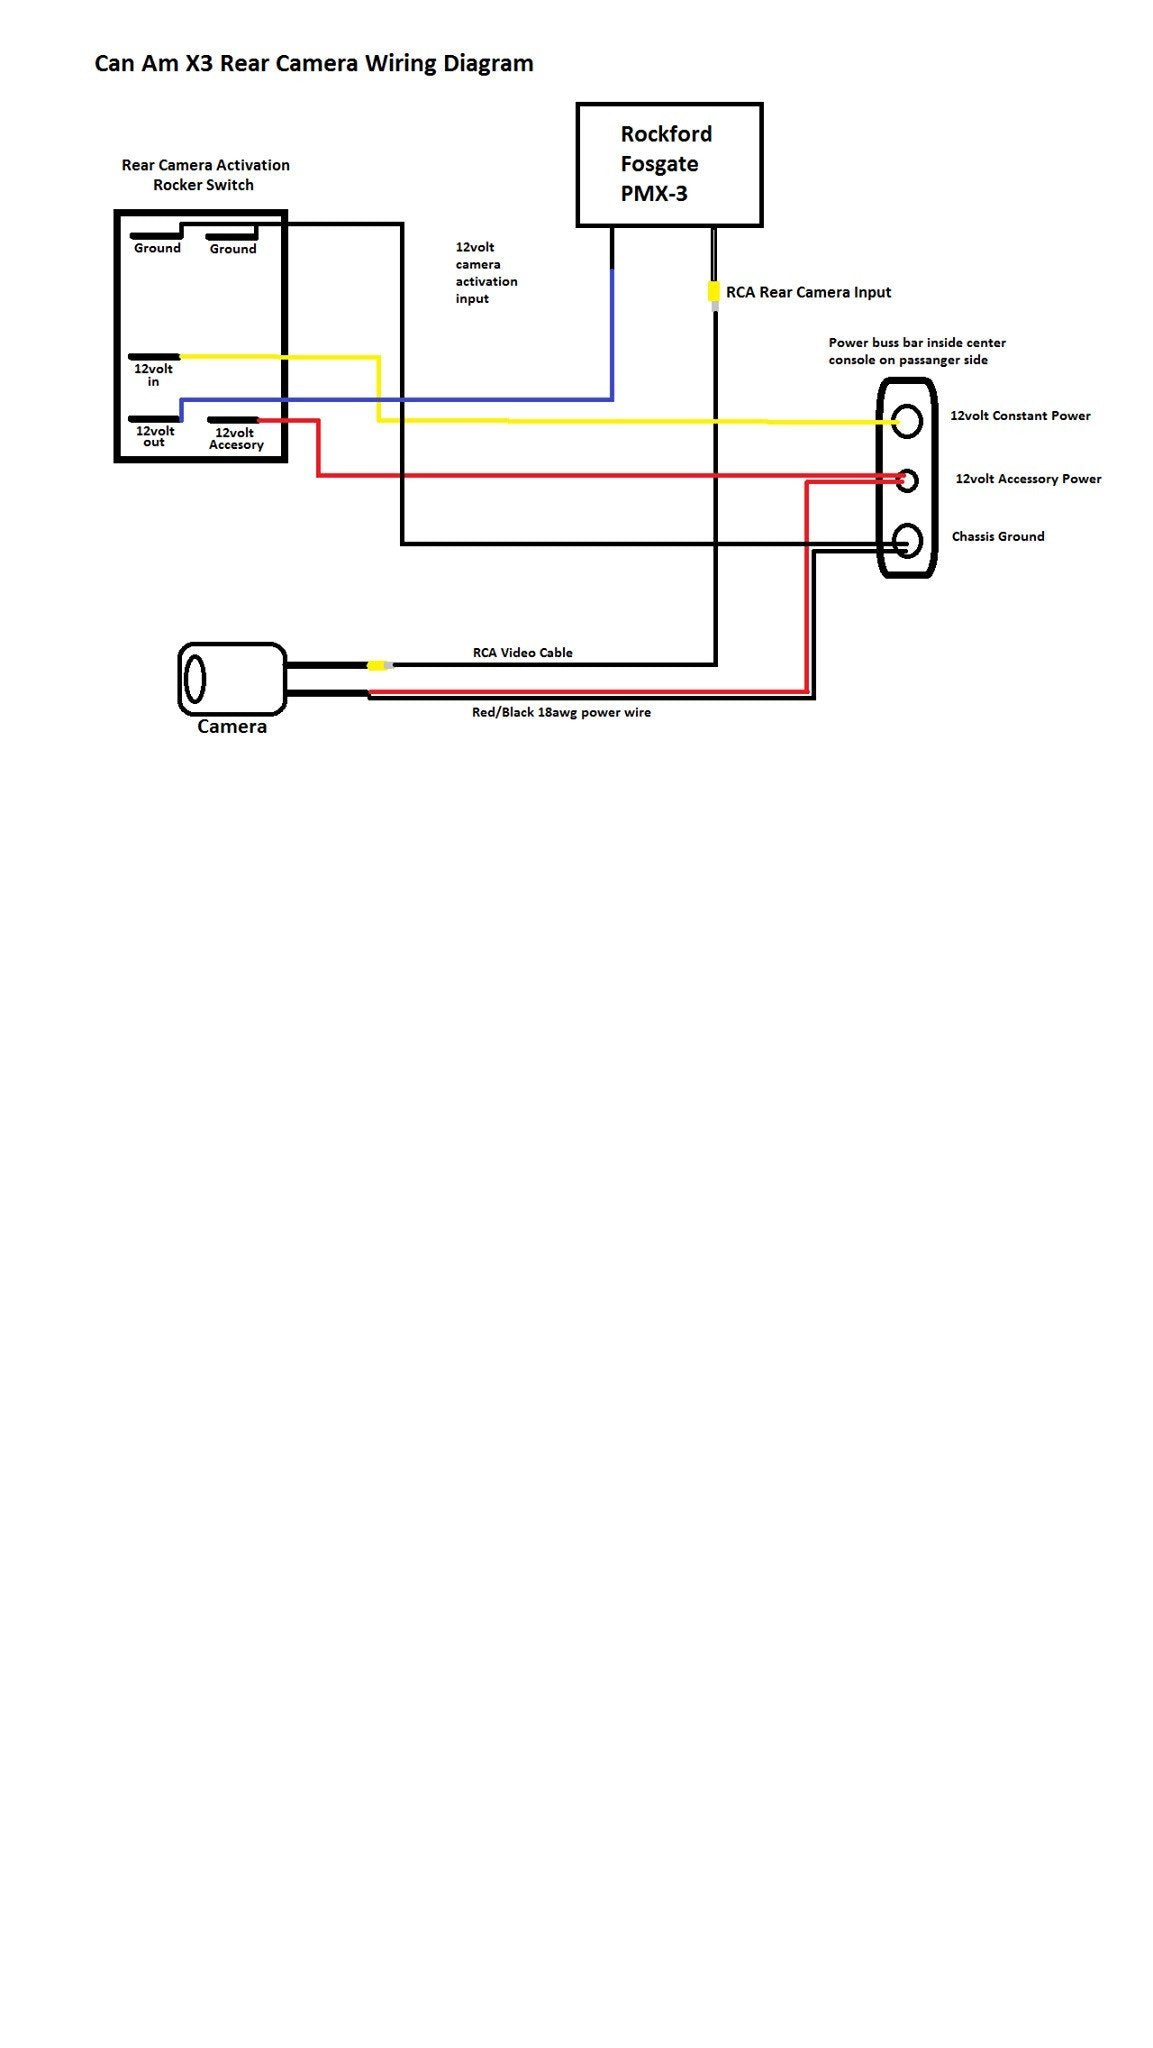 wiring diagram for 2015 can am maverick - wiring diagram browse on  polaris 800 wiring diagram